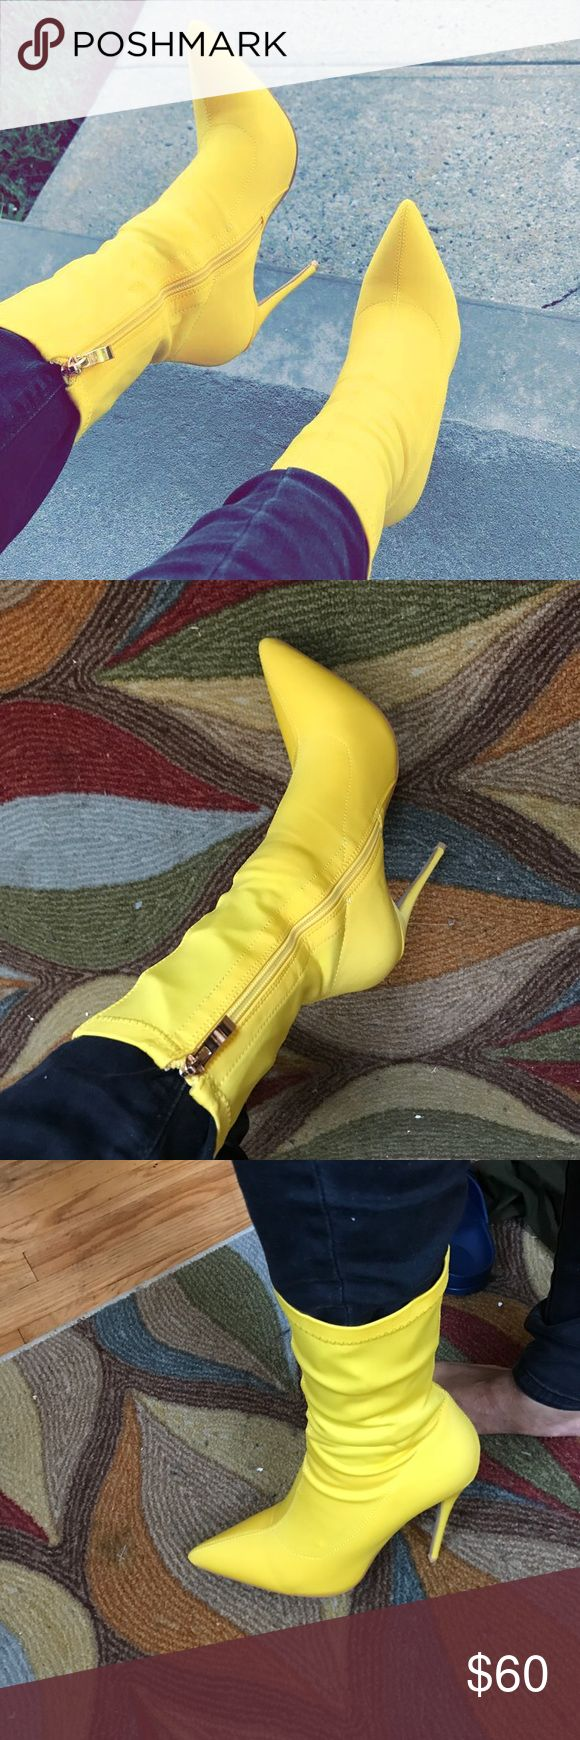 Yellow Ankle boots Never Worn Yellow ankle boots || super cute & stylish || Ego Shoes Ankle Boots & Booties